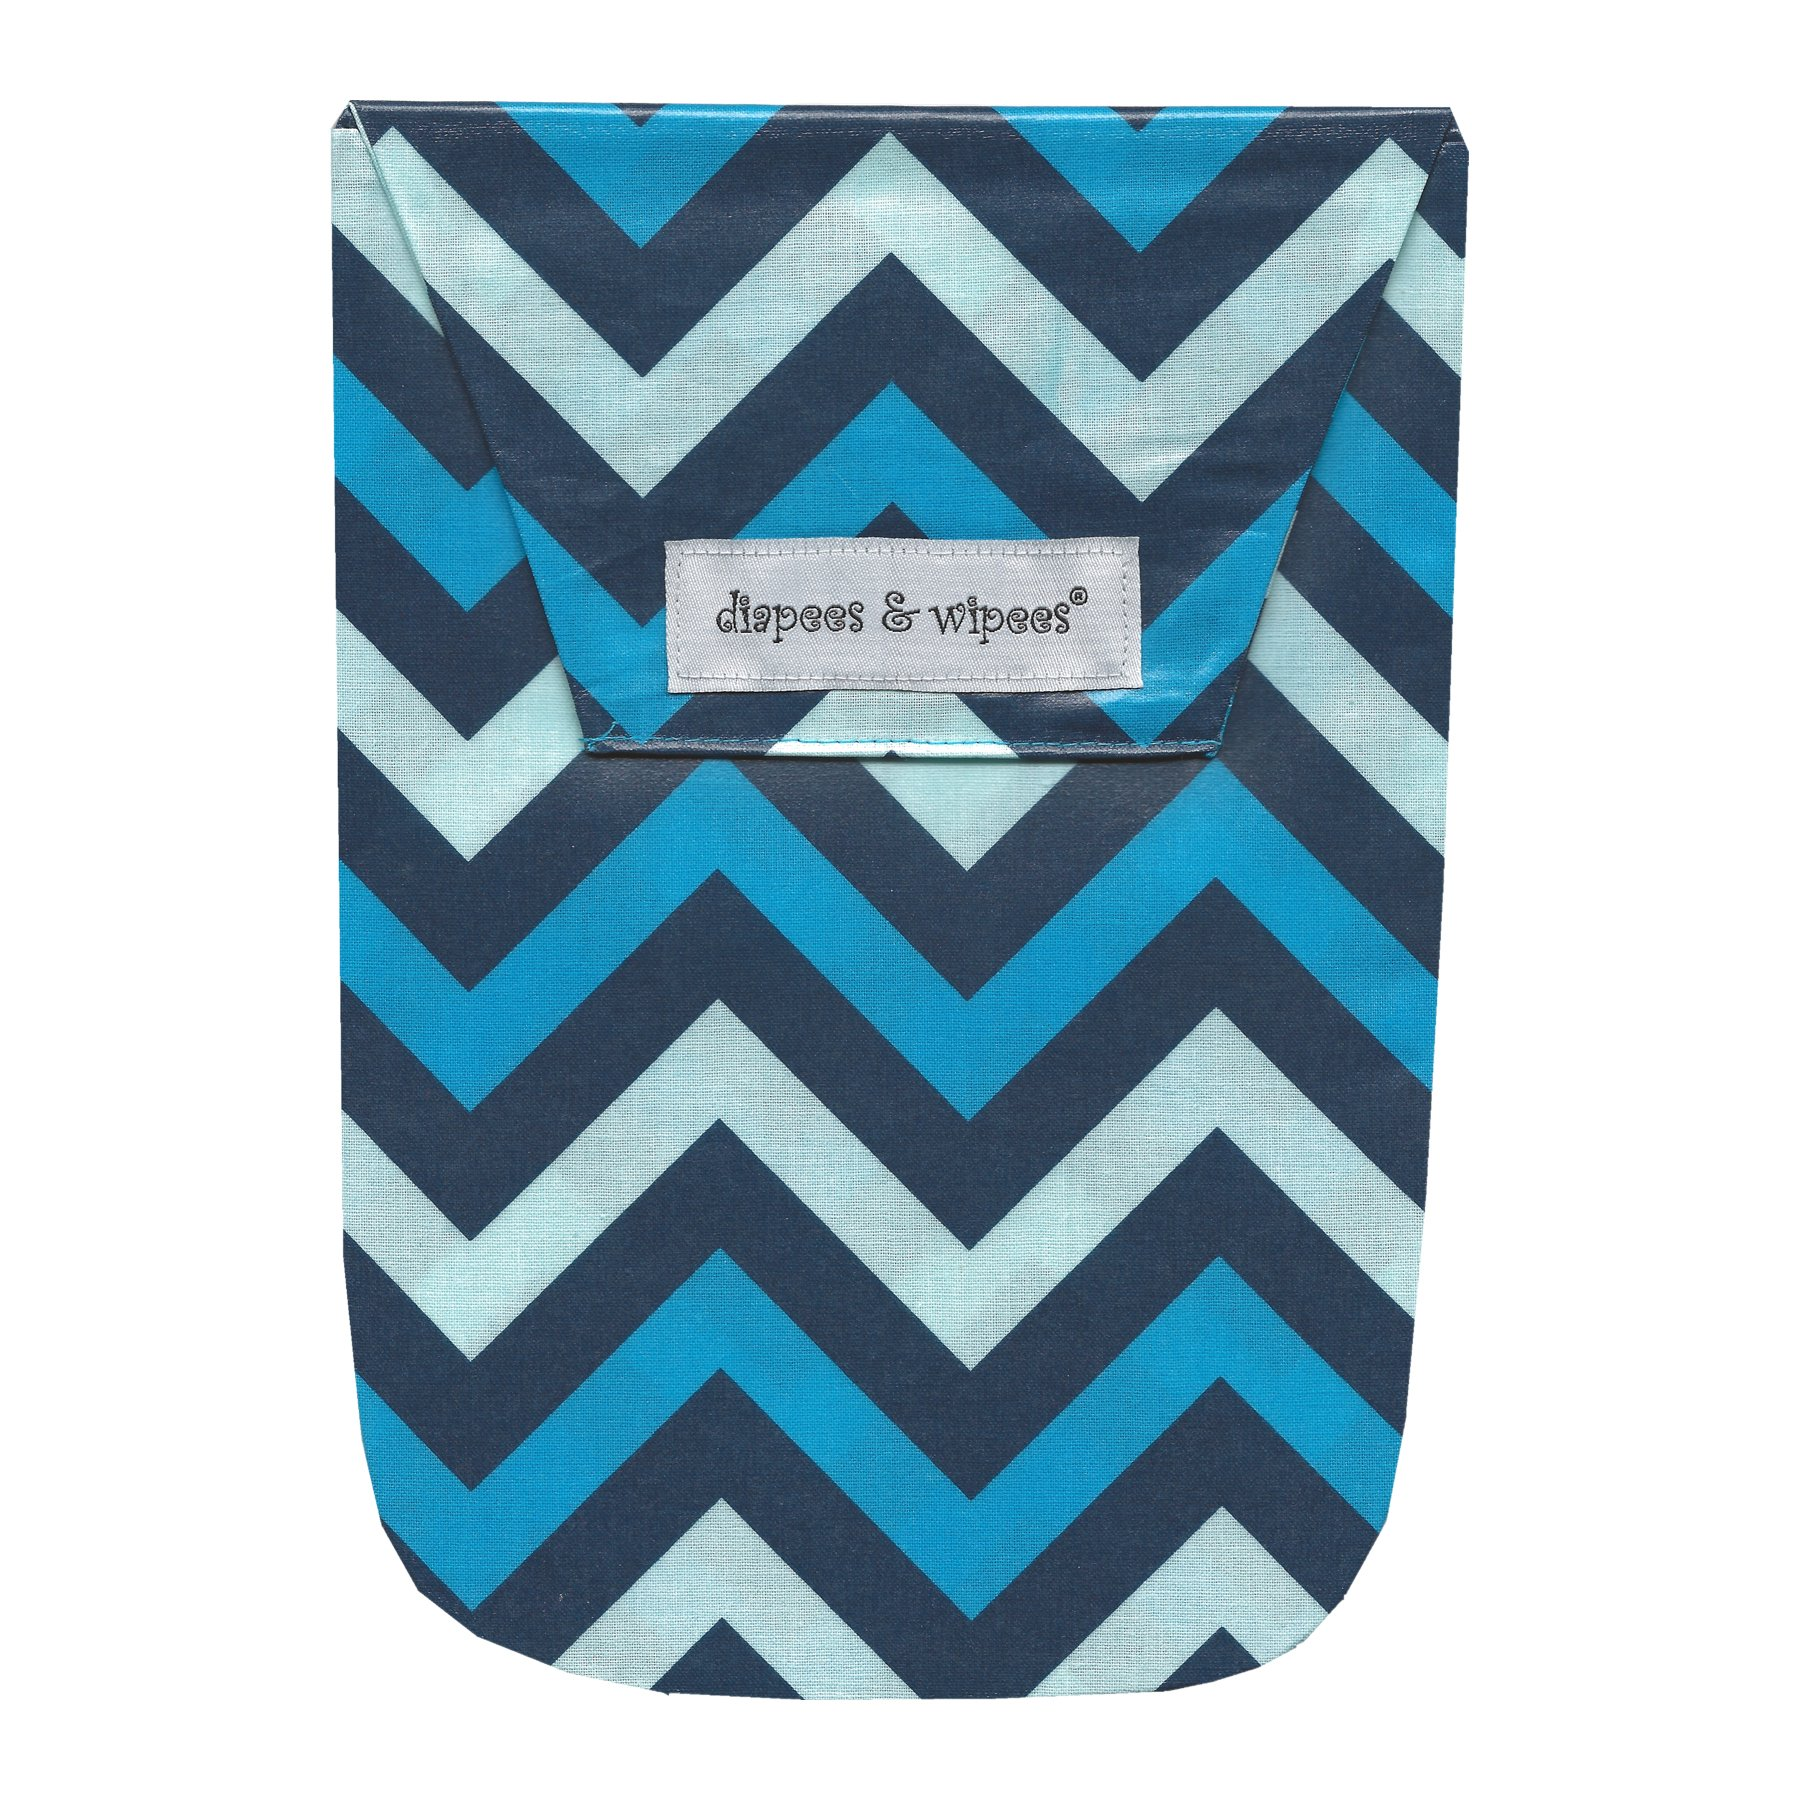 Diapees & Wipees Laminated Bag w/Wipes Case - Chevron Blue